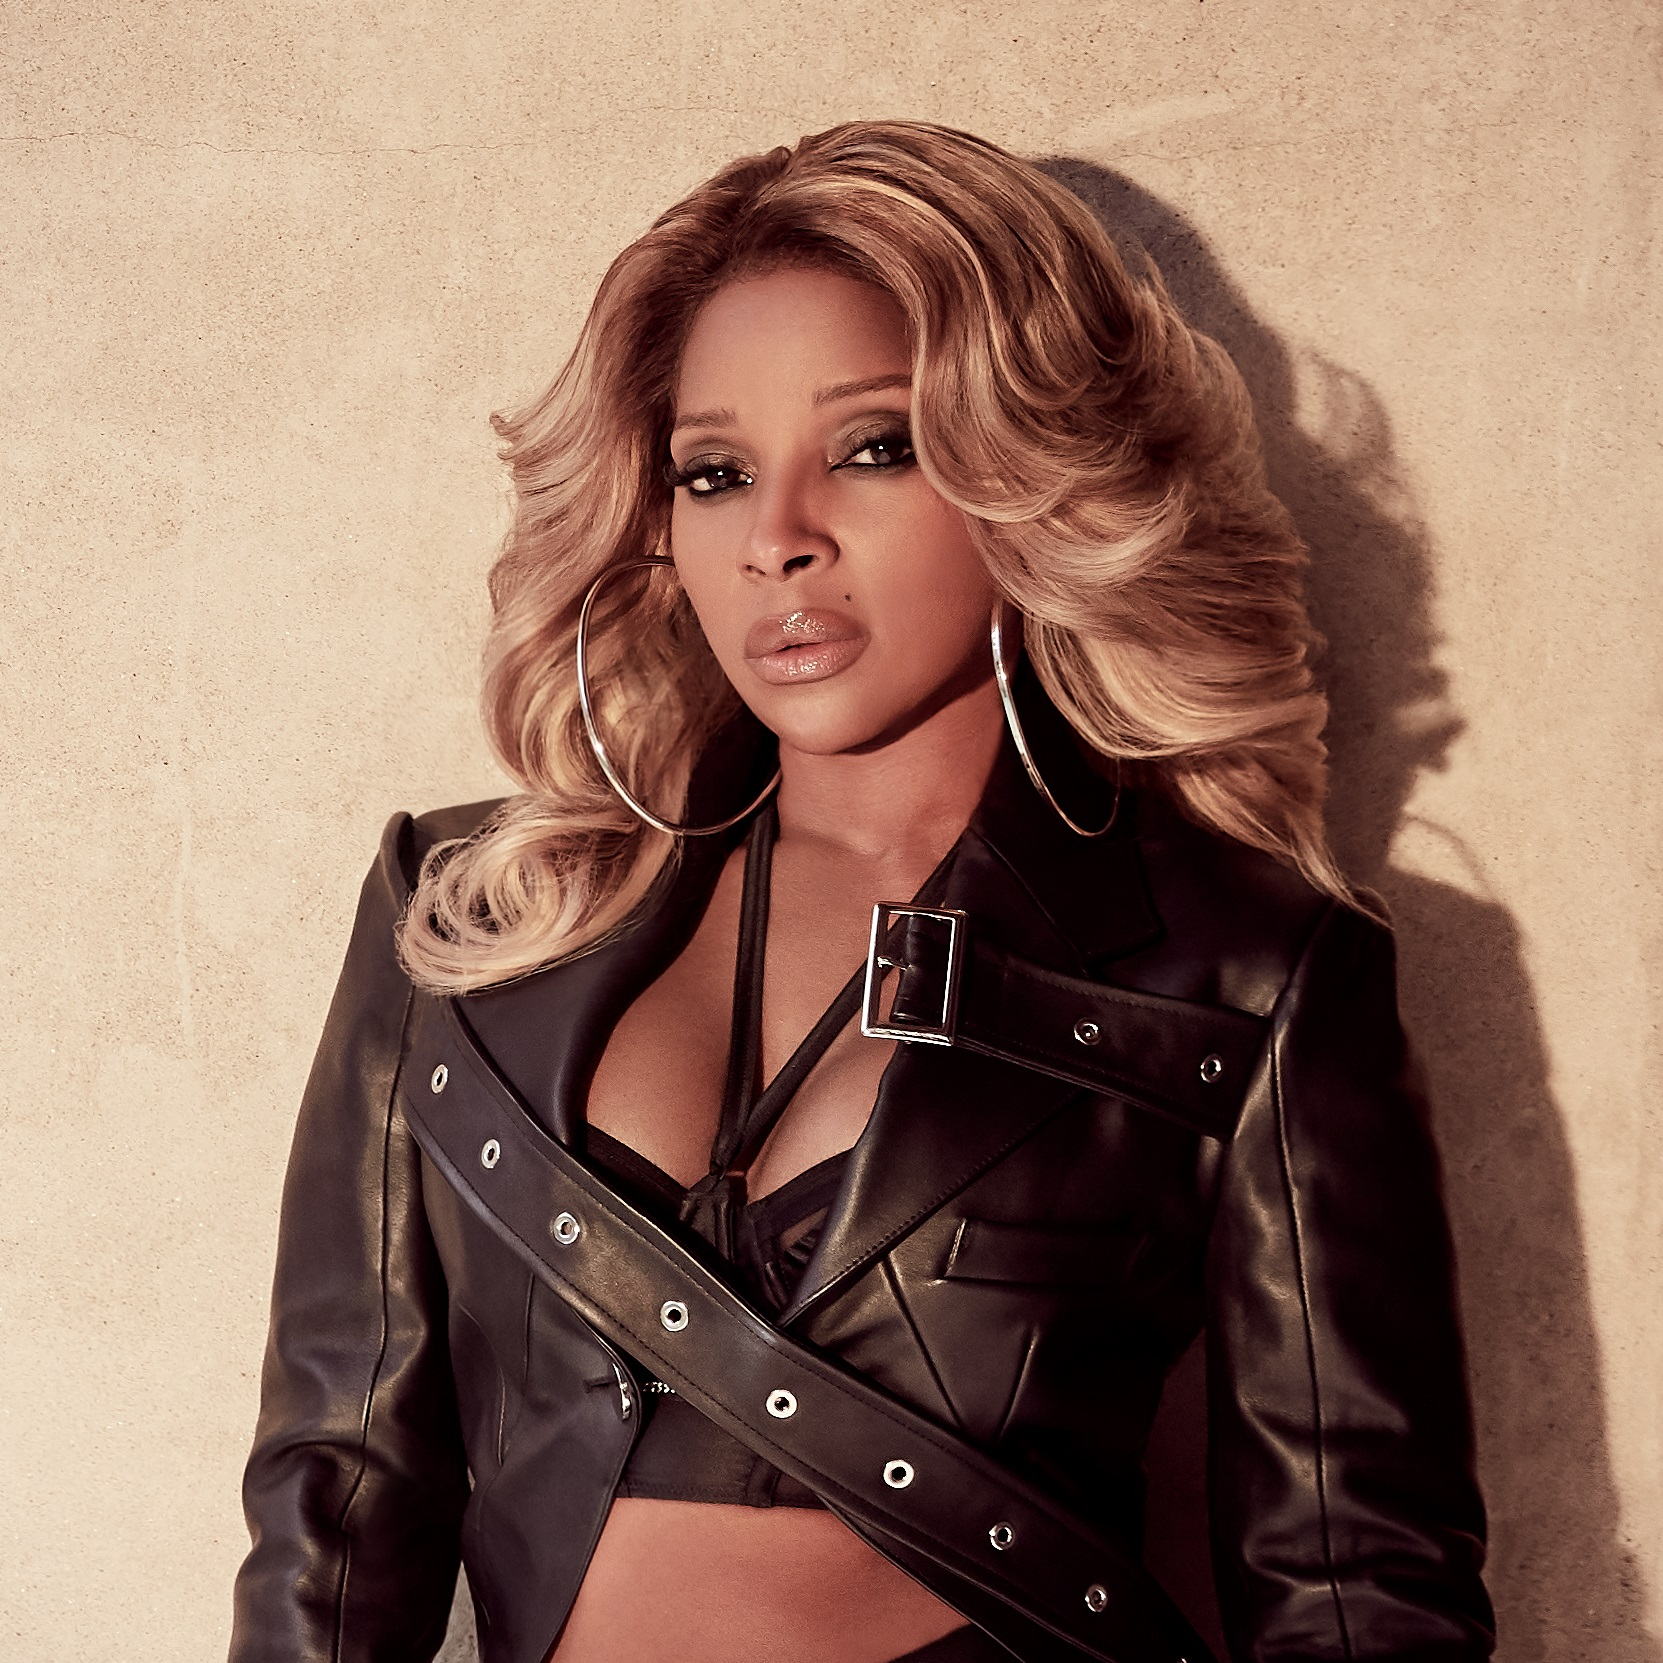 First Look At Mary J. Blige In 'Power Book II: Ghost'